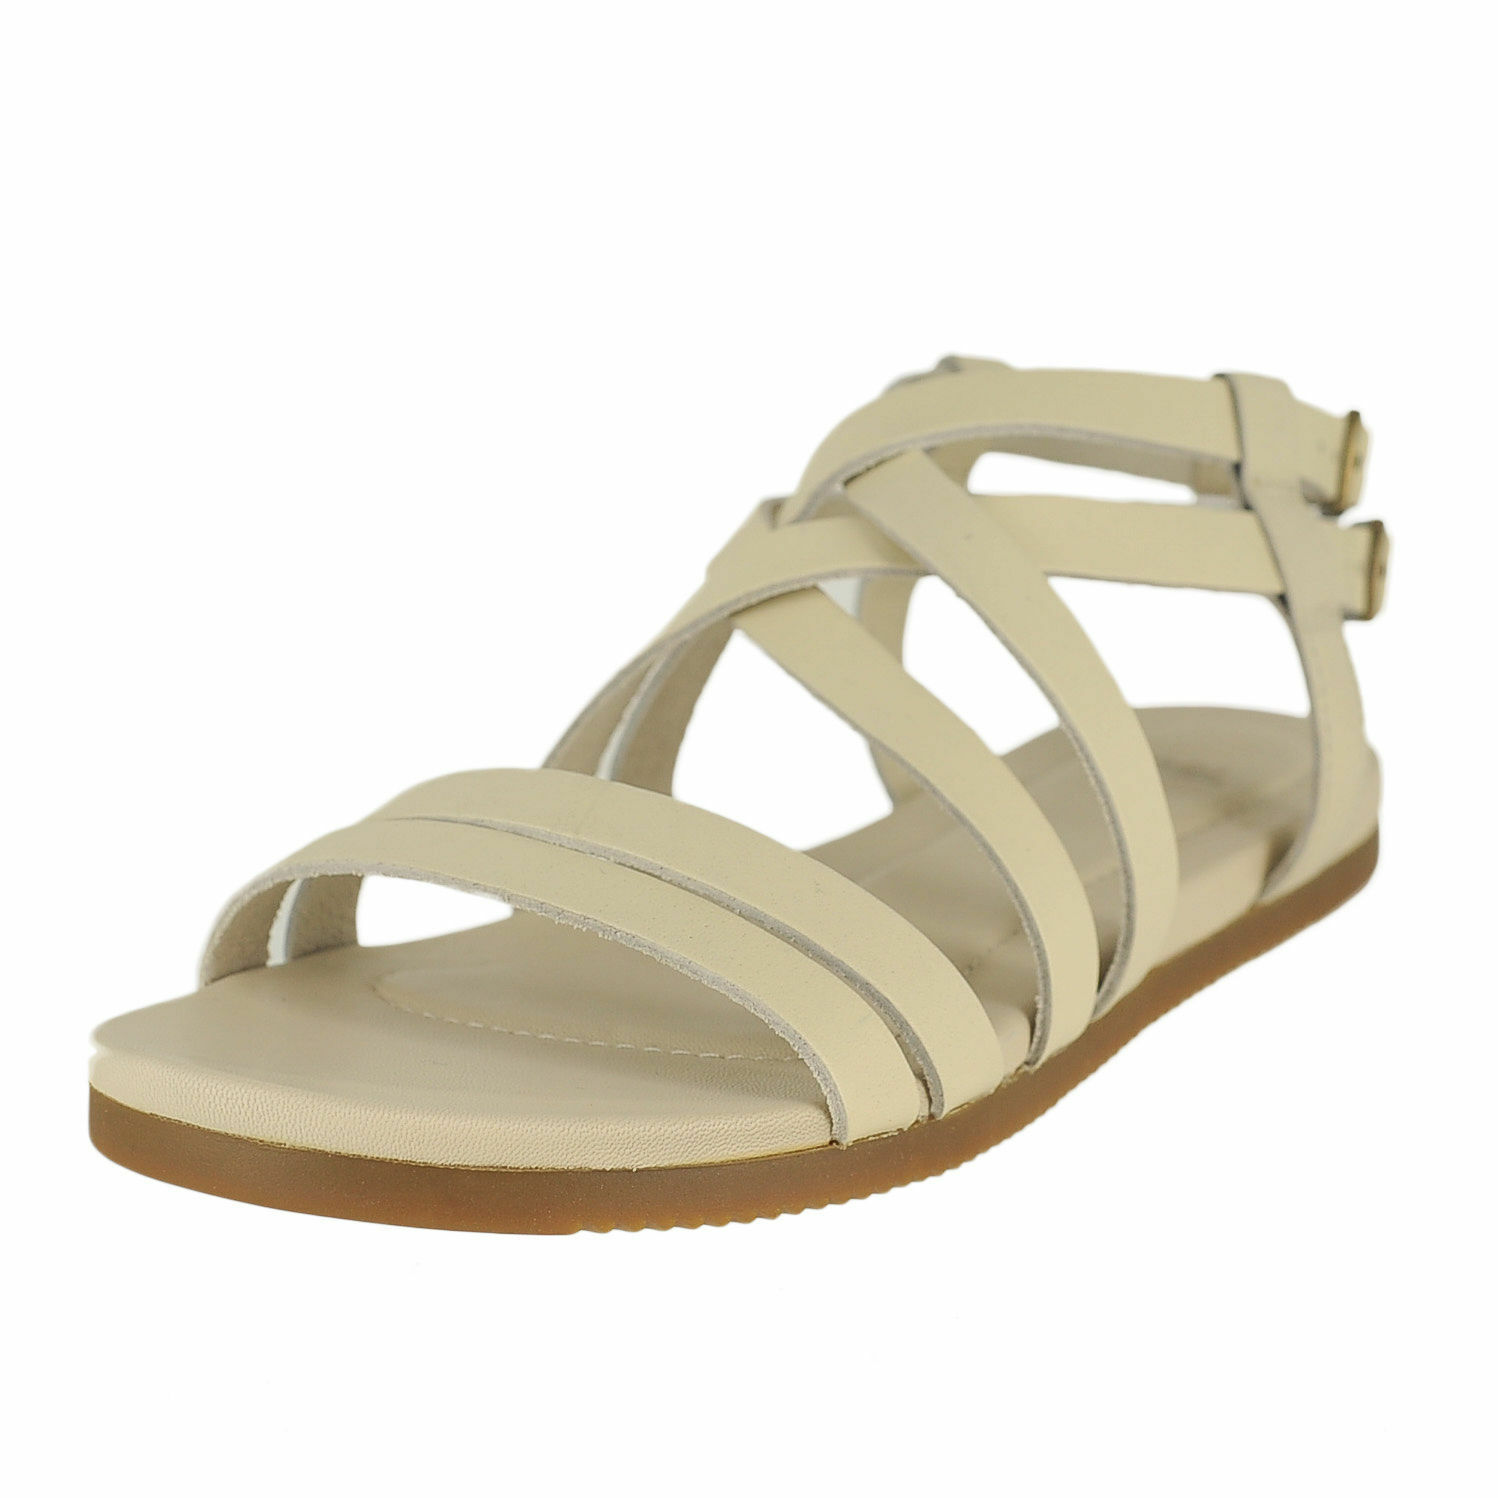 9faa153a5913 Buy Teva Avalina Crossover Leather White Color Womens Sandals Size ...